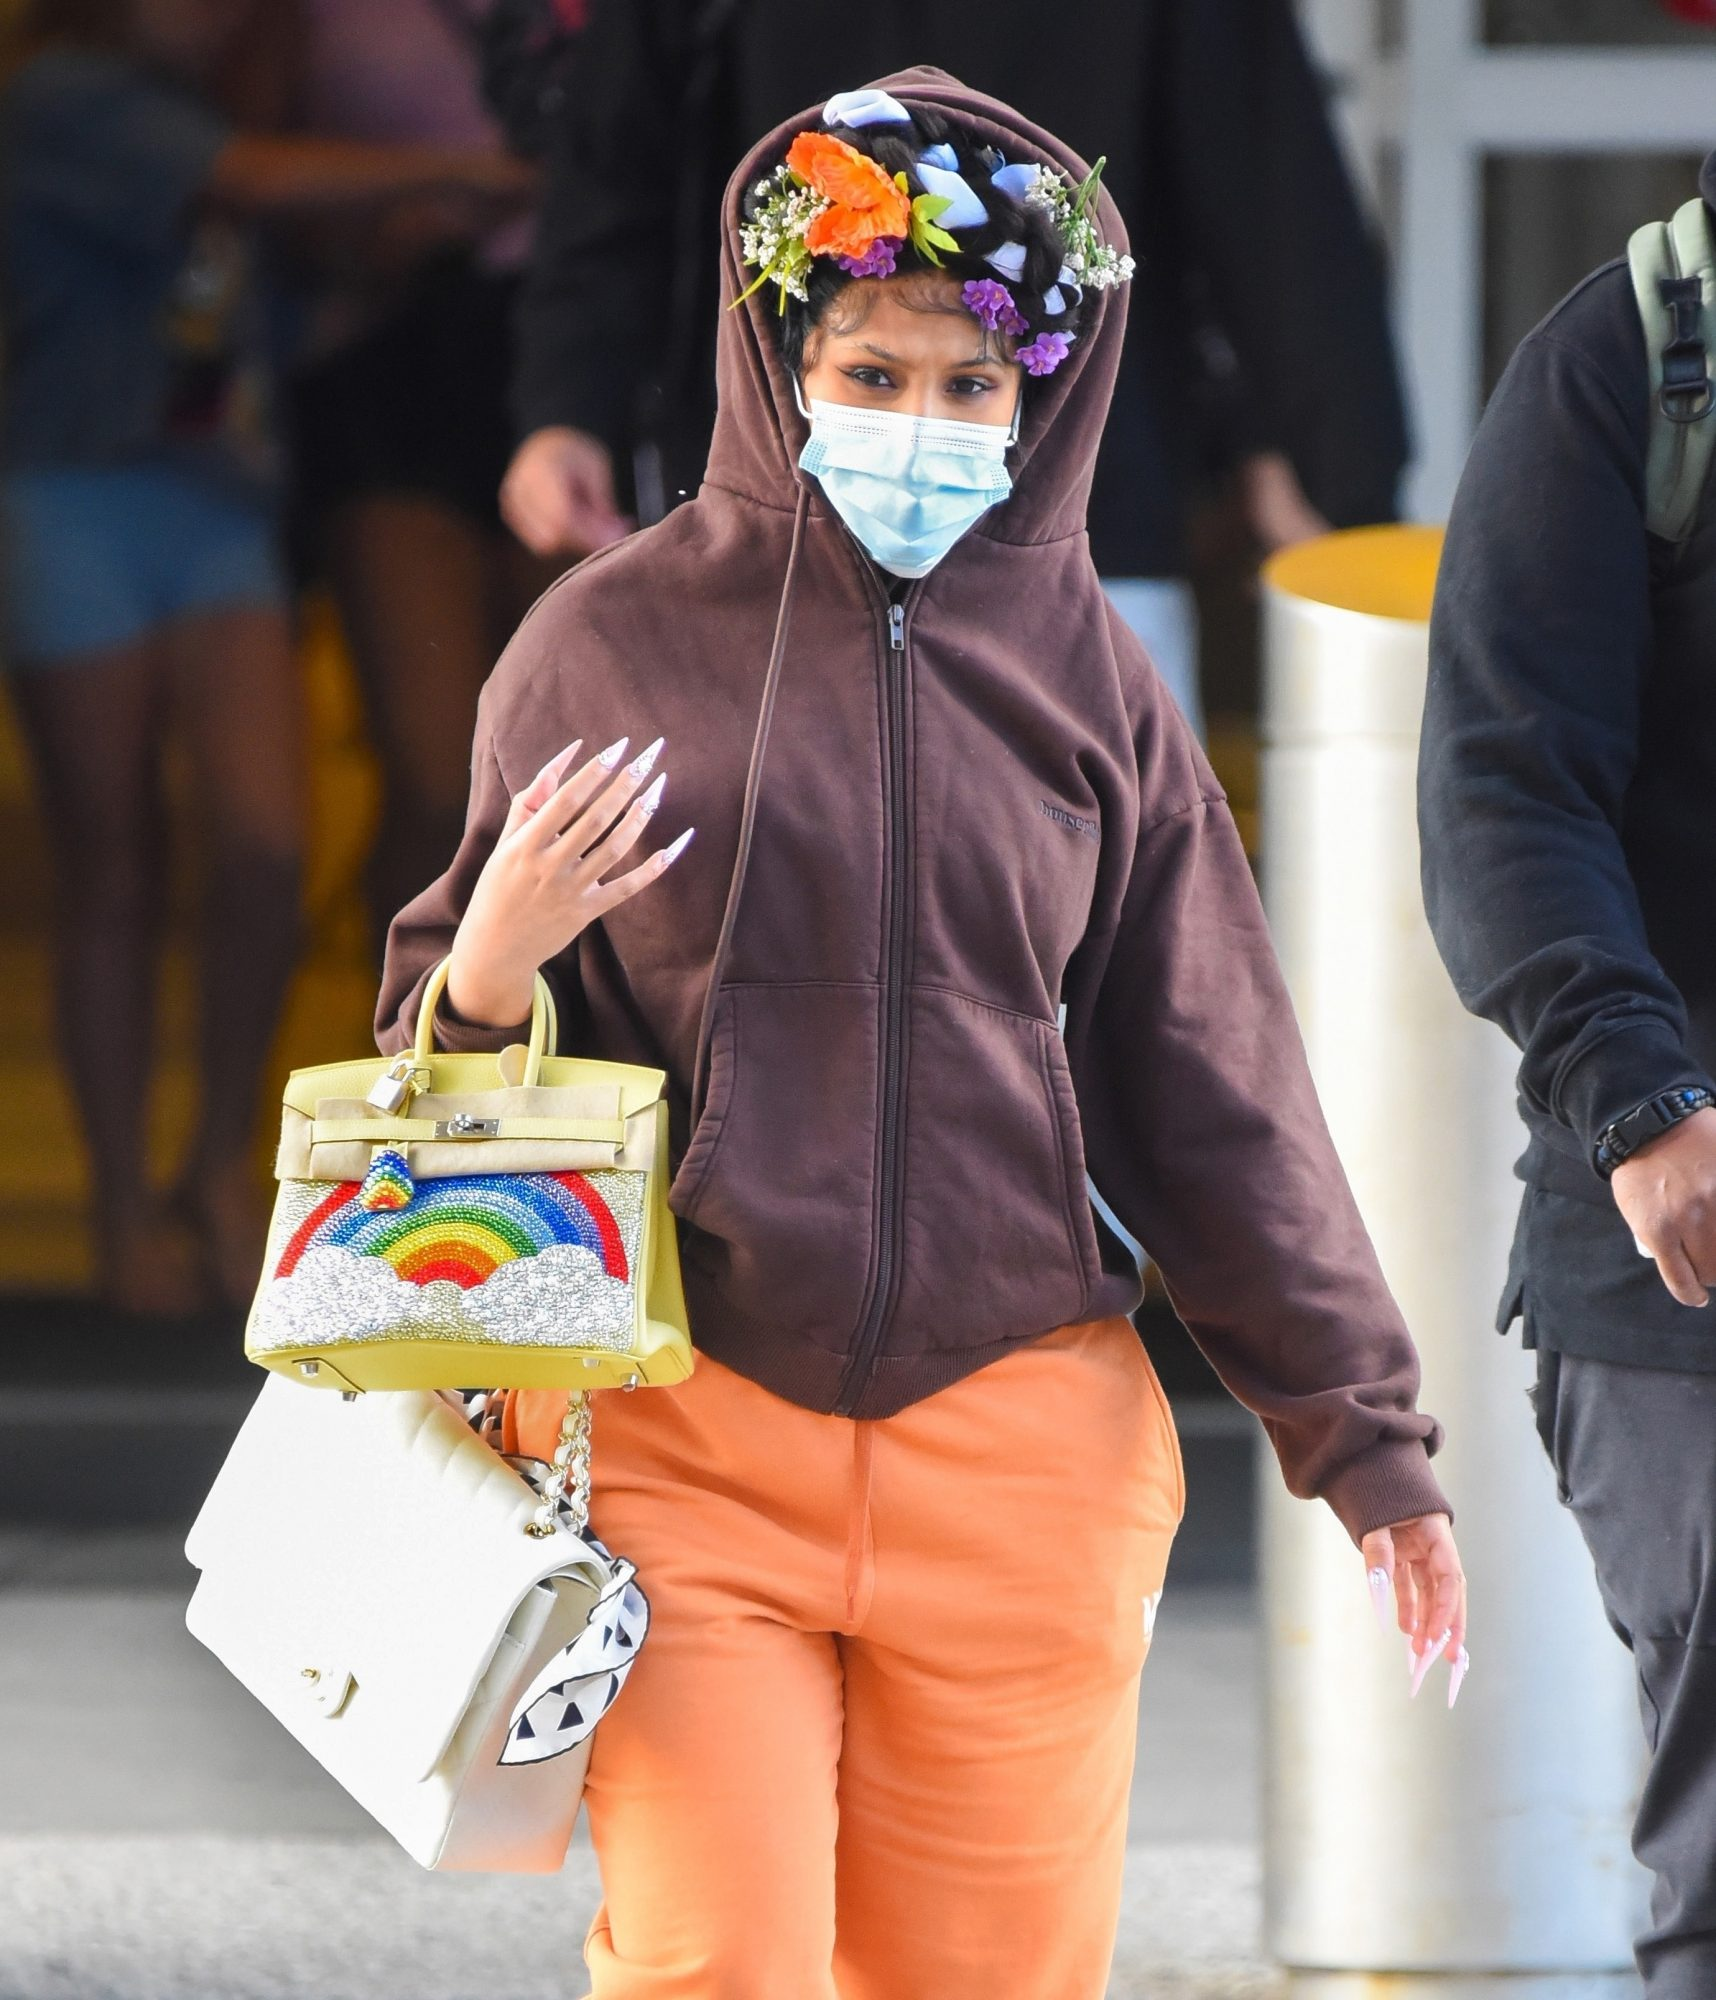 Pregnant Cardi B Jazzes Up Her Casual Airport Look By Wearing A Floral Headband